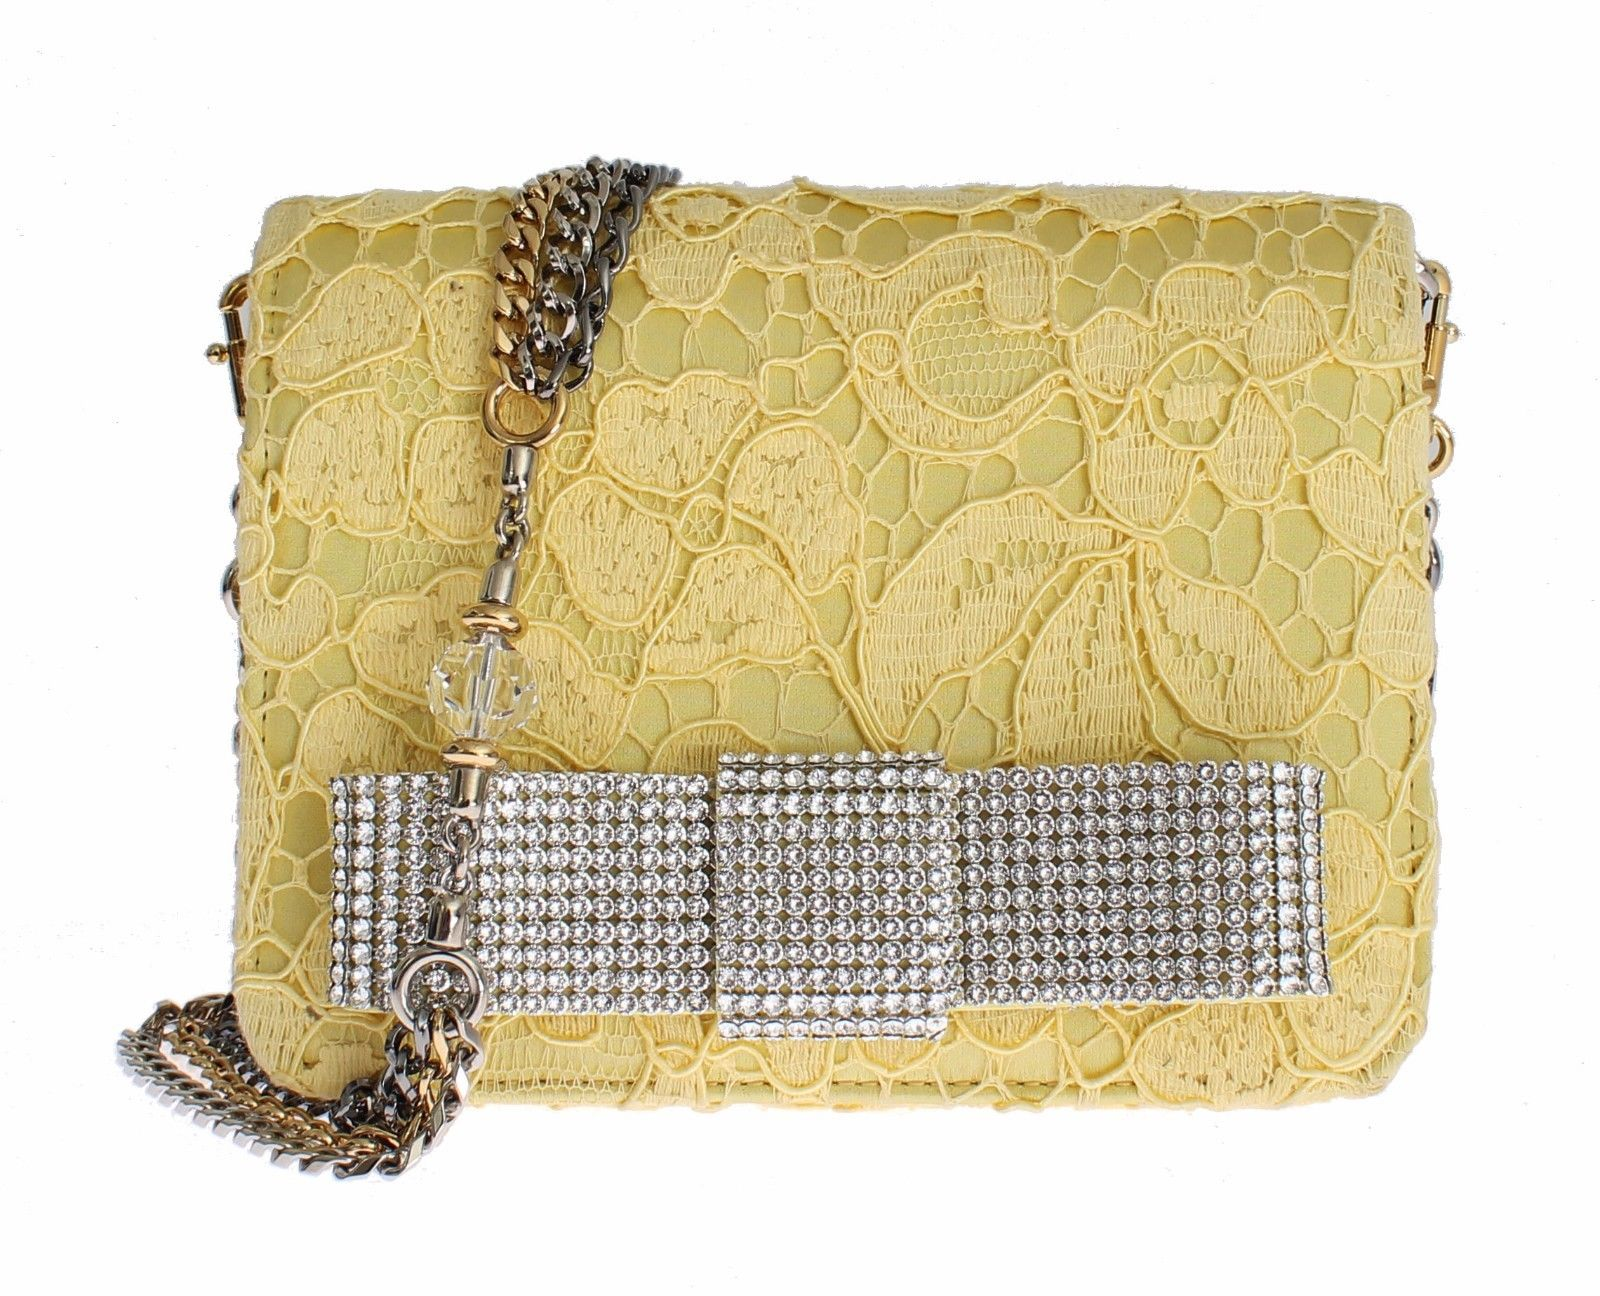 Dolce & Gabbana Women's Lace Crystal Hand Shoulder Bag Yellow SIG13439